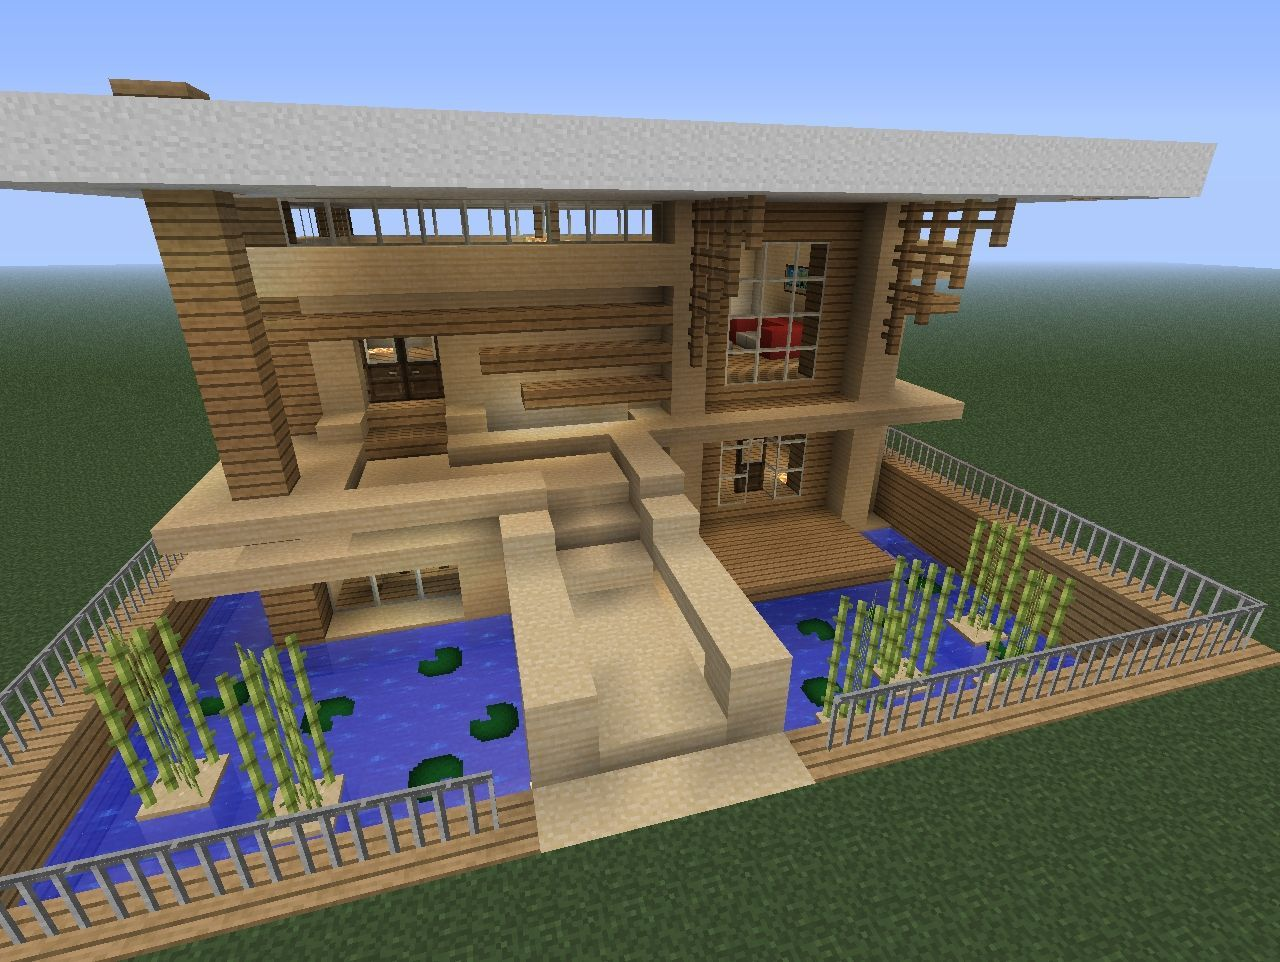 Best 25 minecraft houses ideas on pinterest minecraft minecraft designs and minecraft buildings - Minecraft house ideas ...